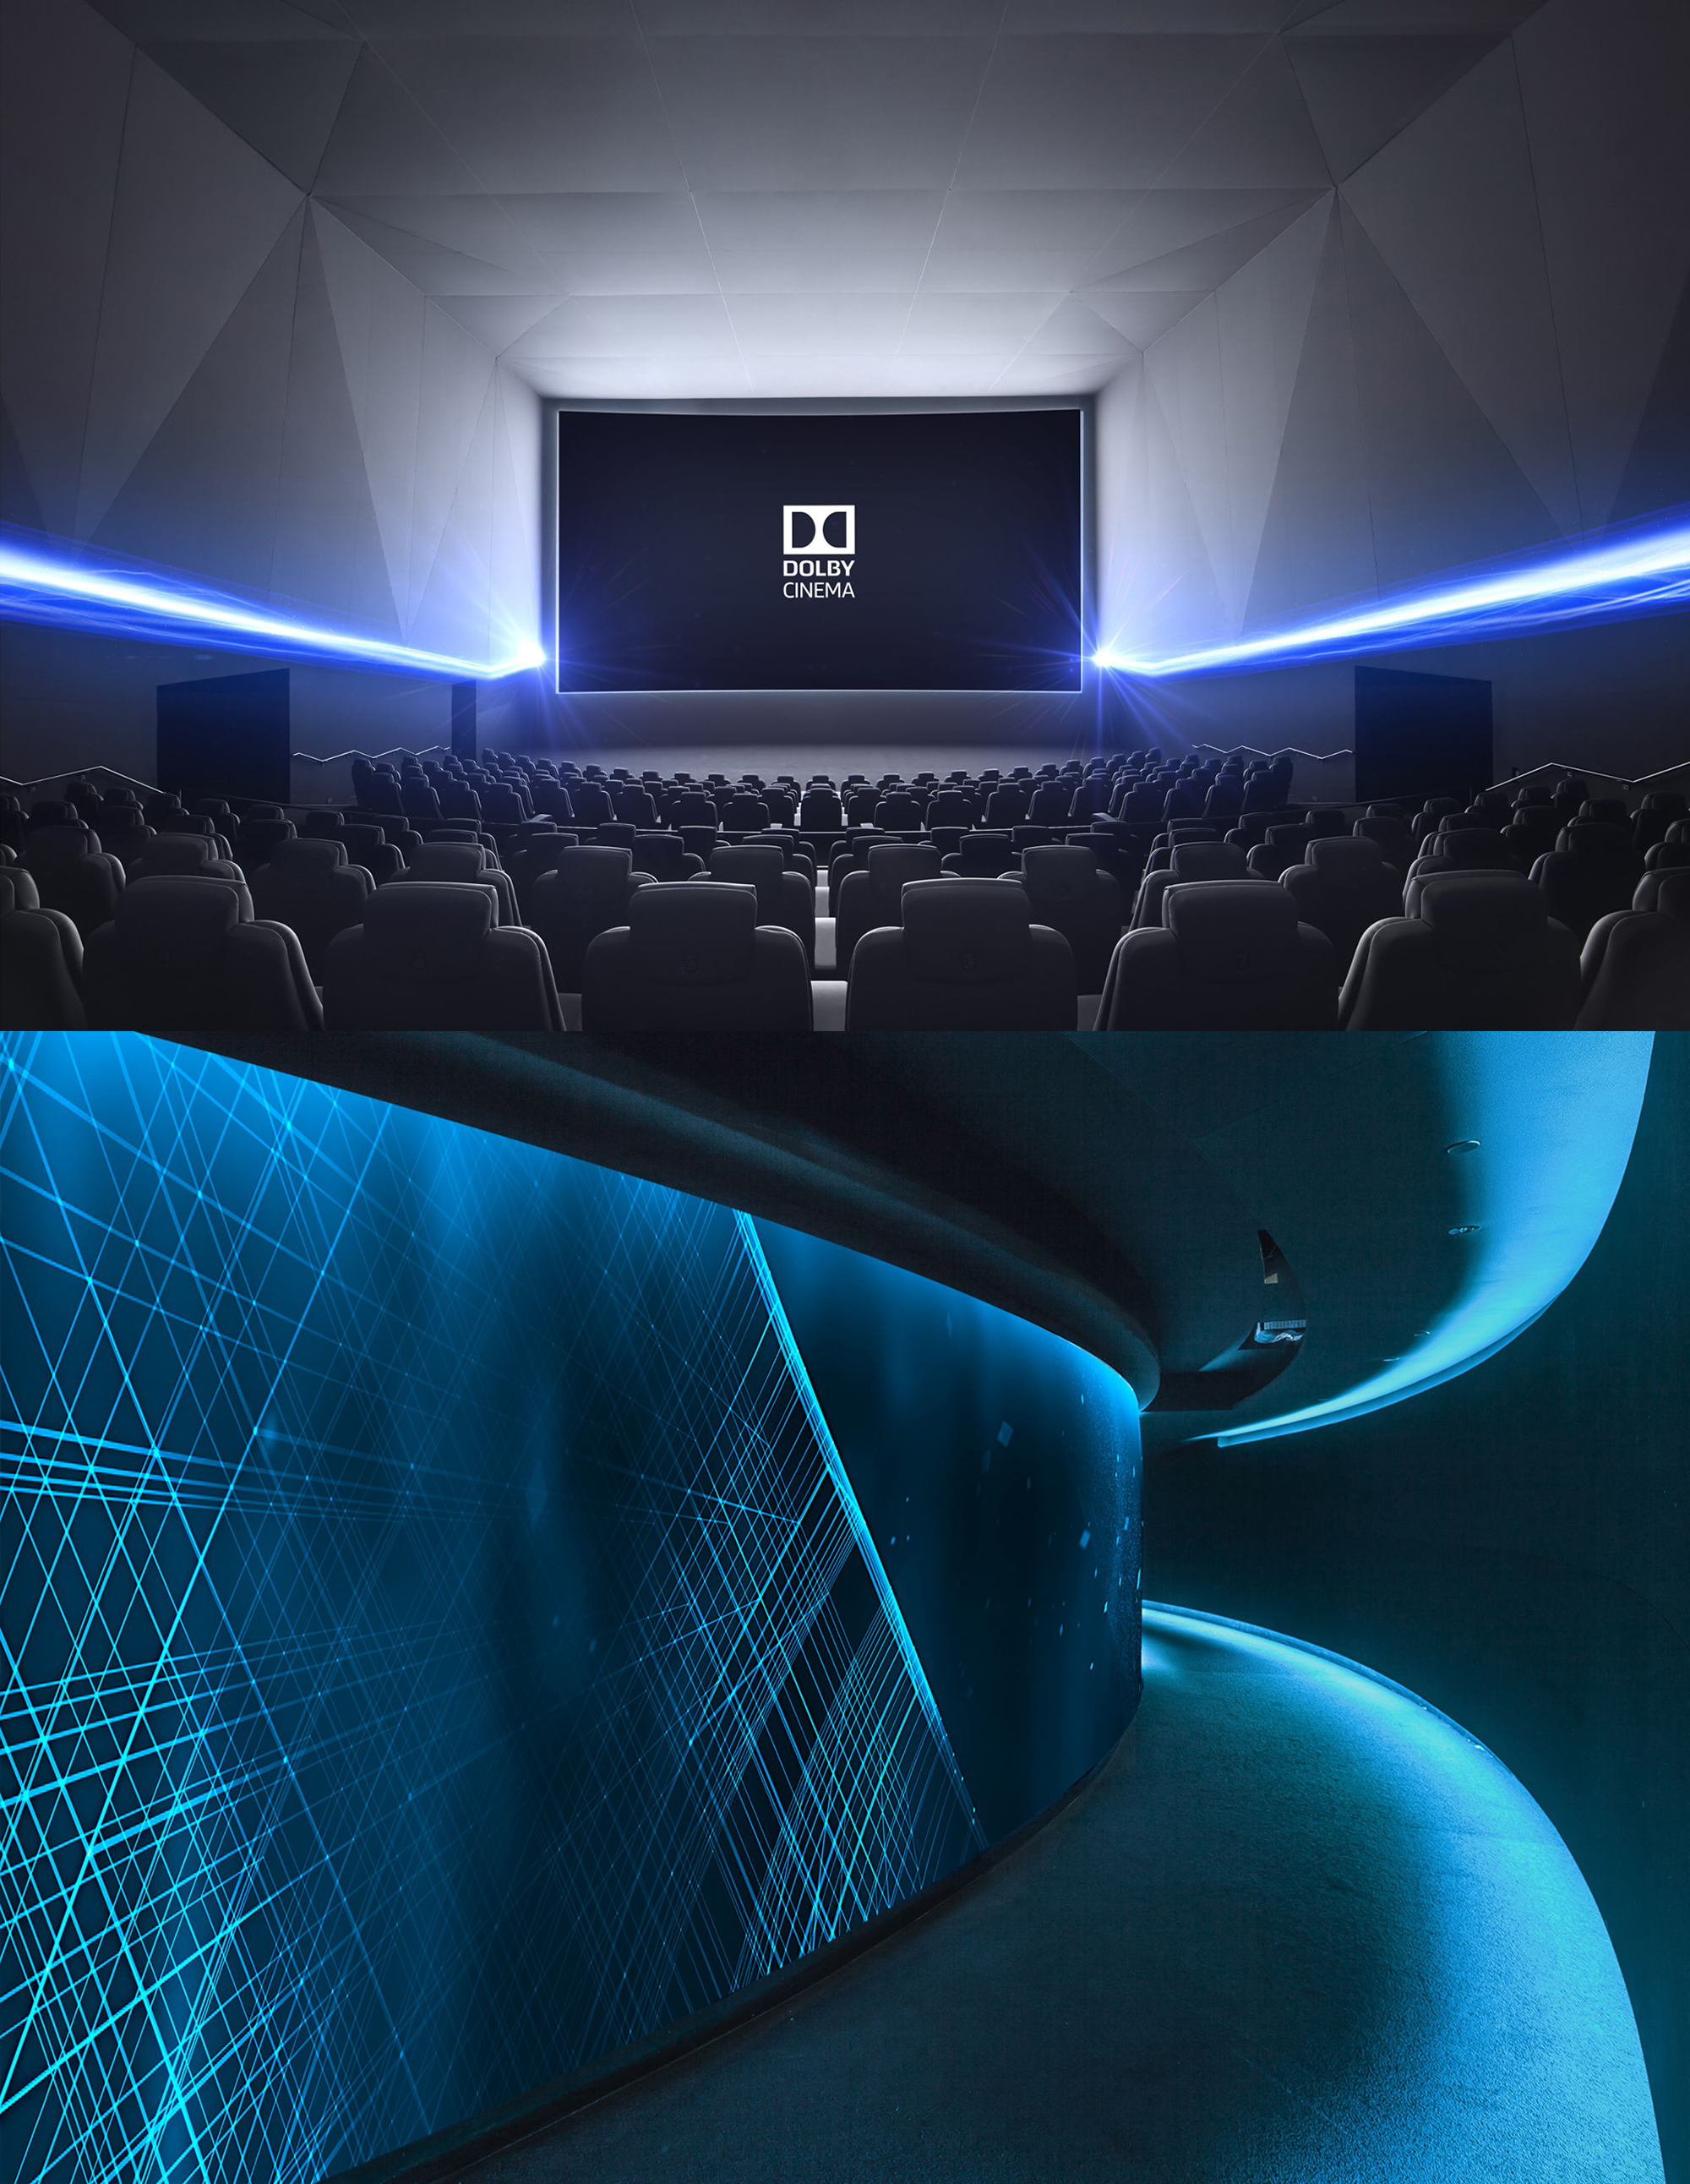 Project: Dolby CinemaMy Role: Concept design and renderings for interactive lighting